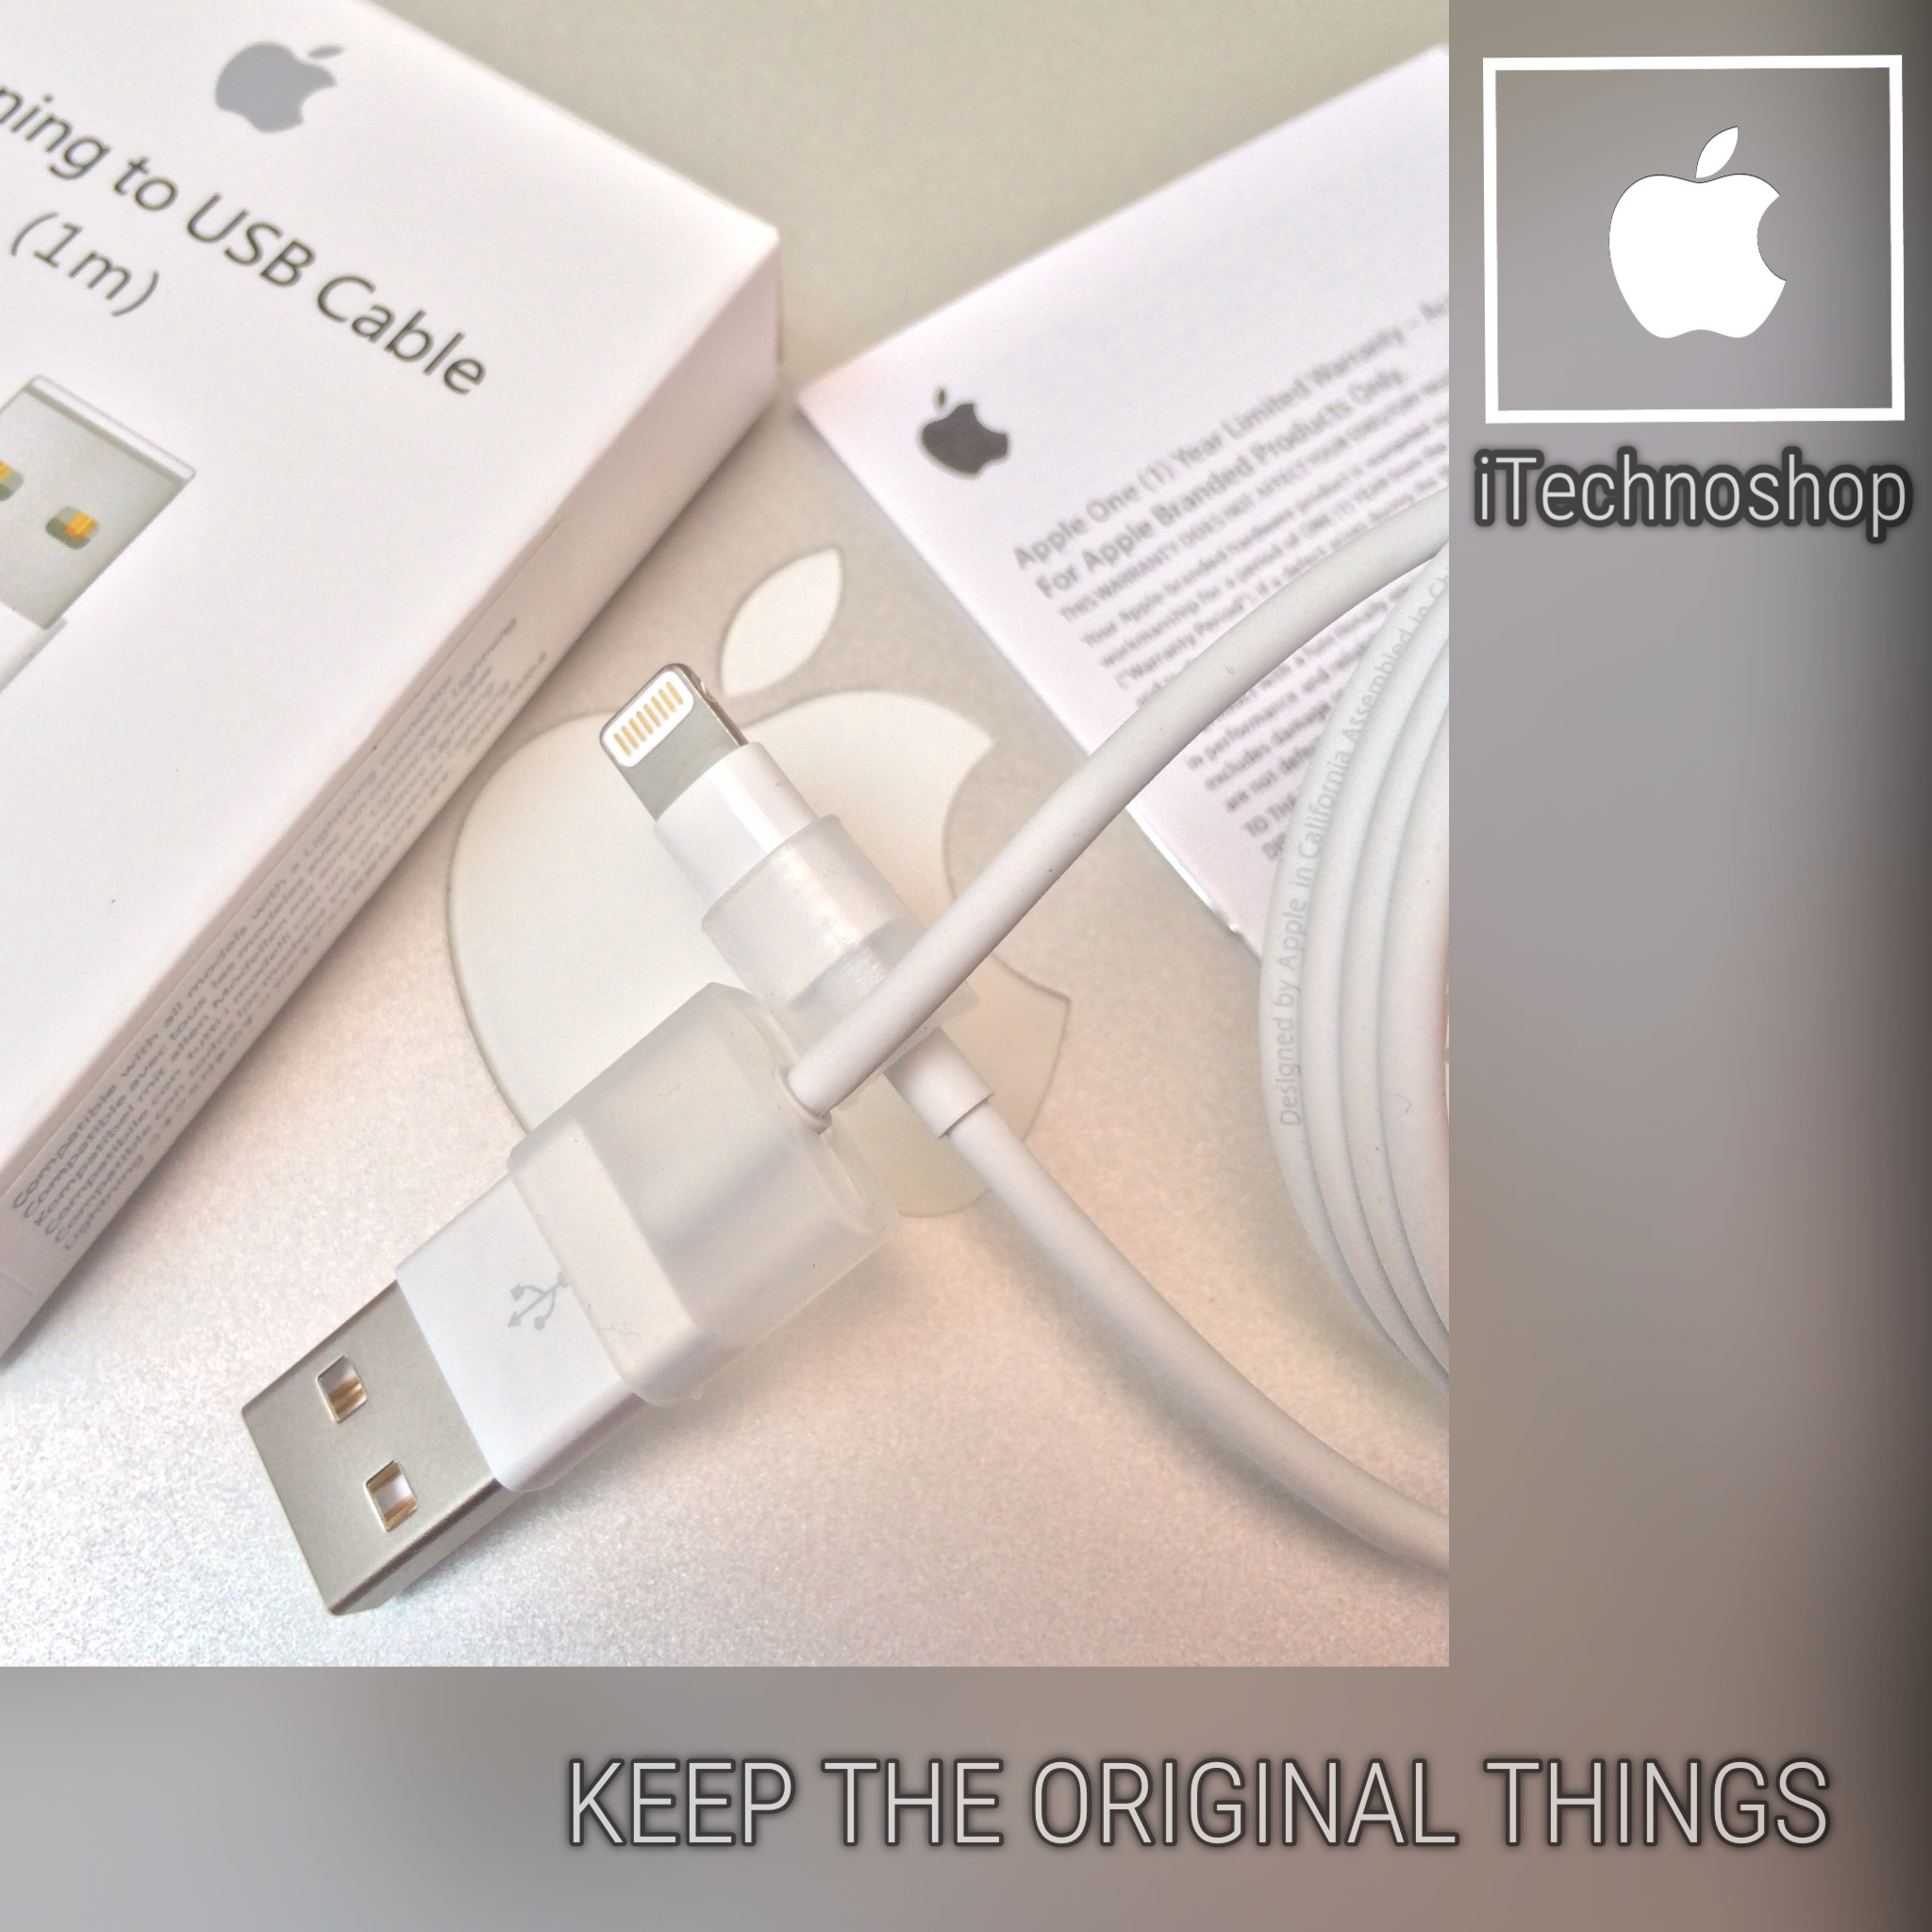 Harga Lightning Cable Iphone Original: Apple Original Kabel Data Lightning Iphone 5 5c 5s Ipad Mini rh:id.colafw.com,Design